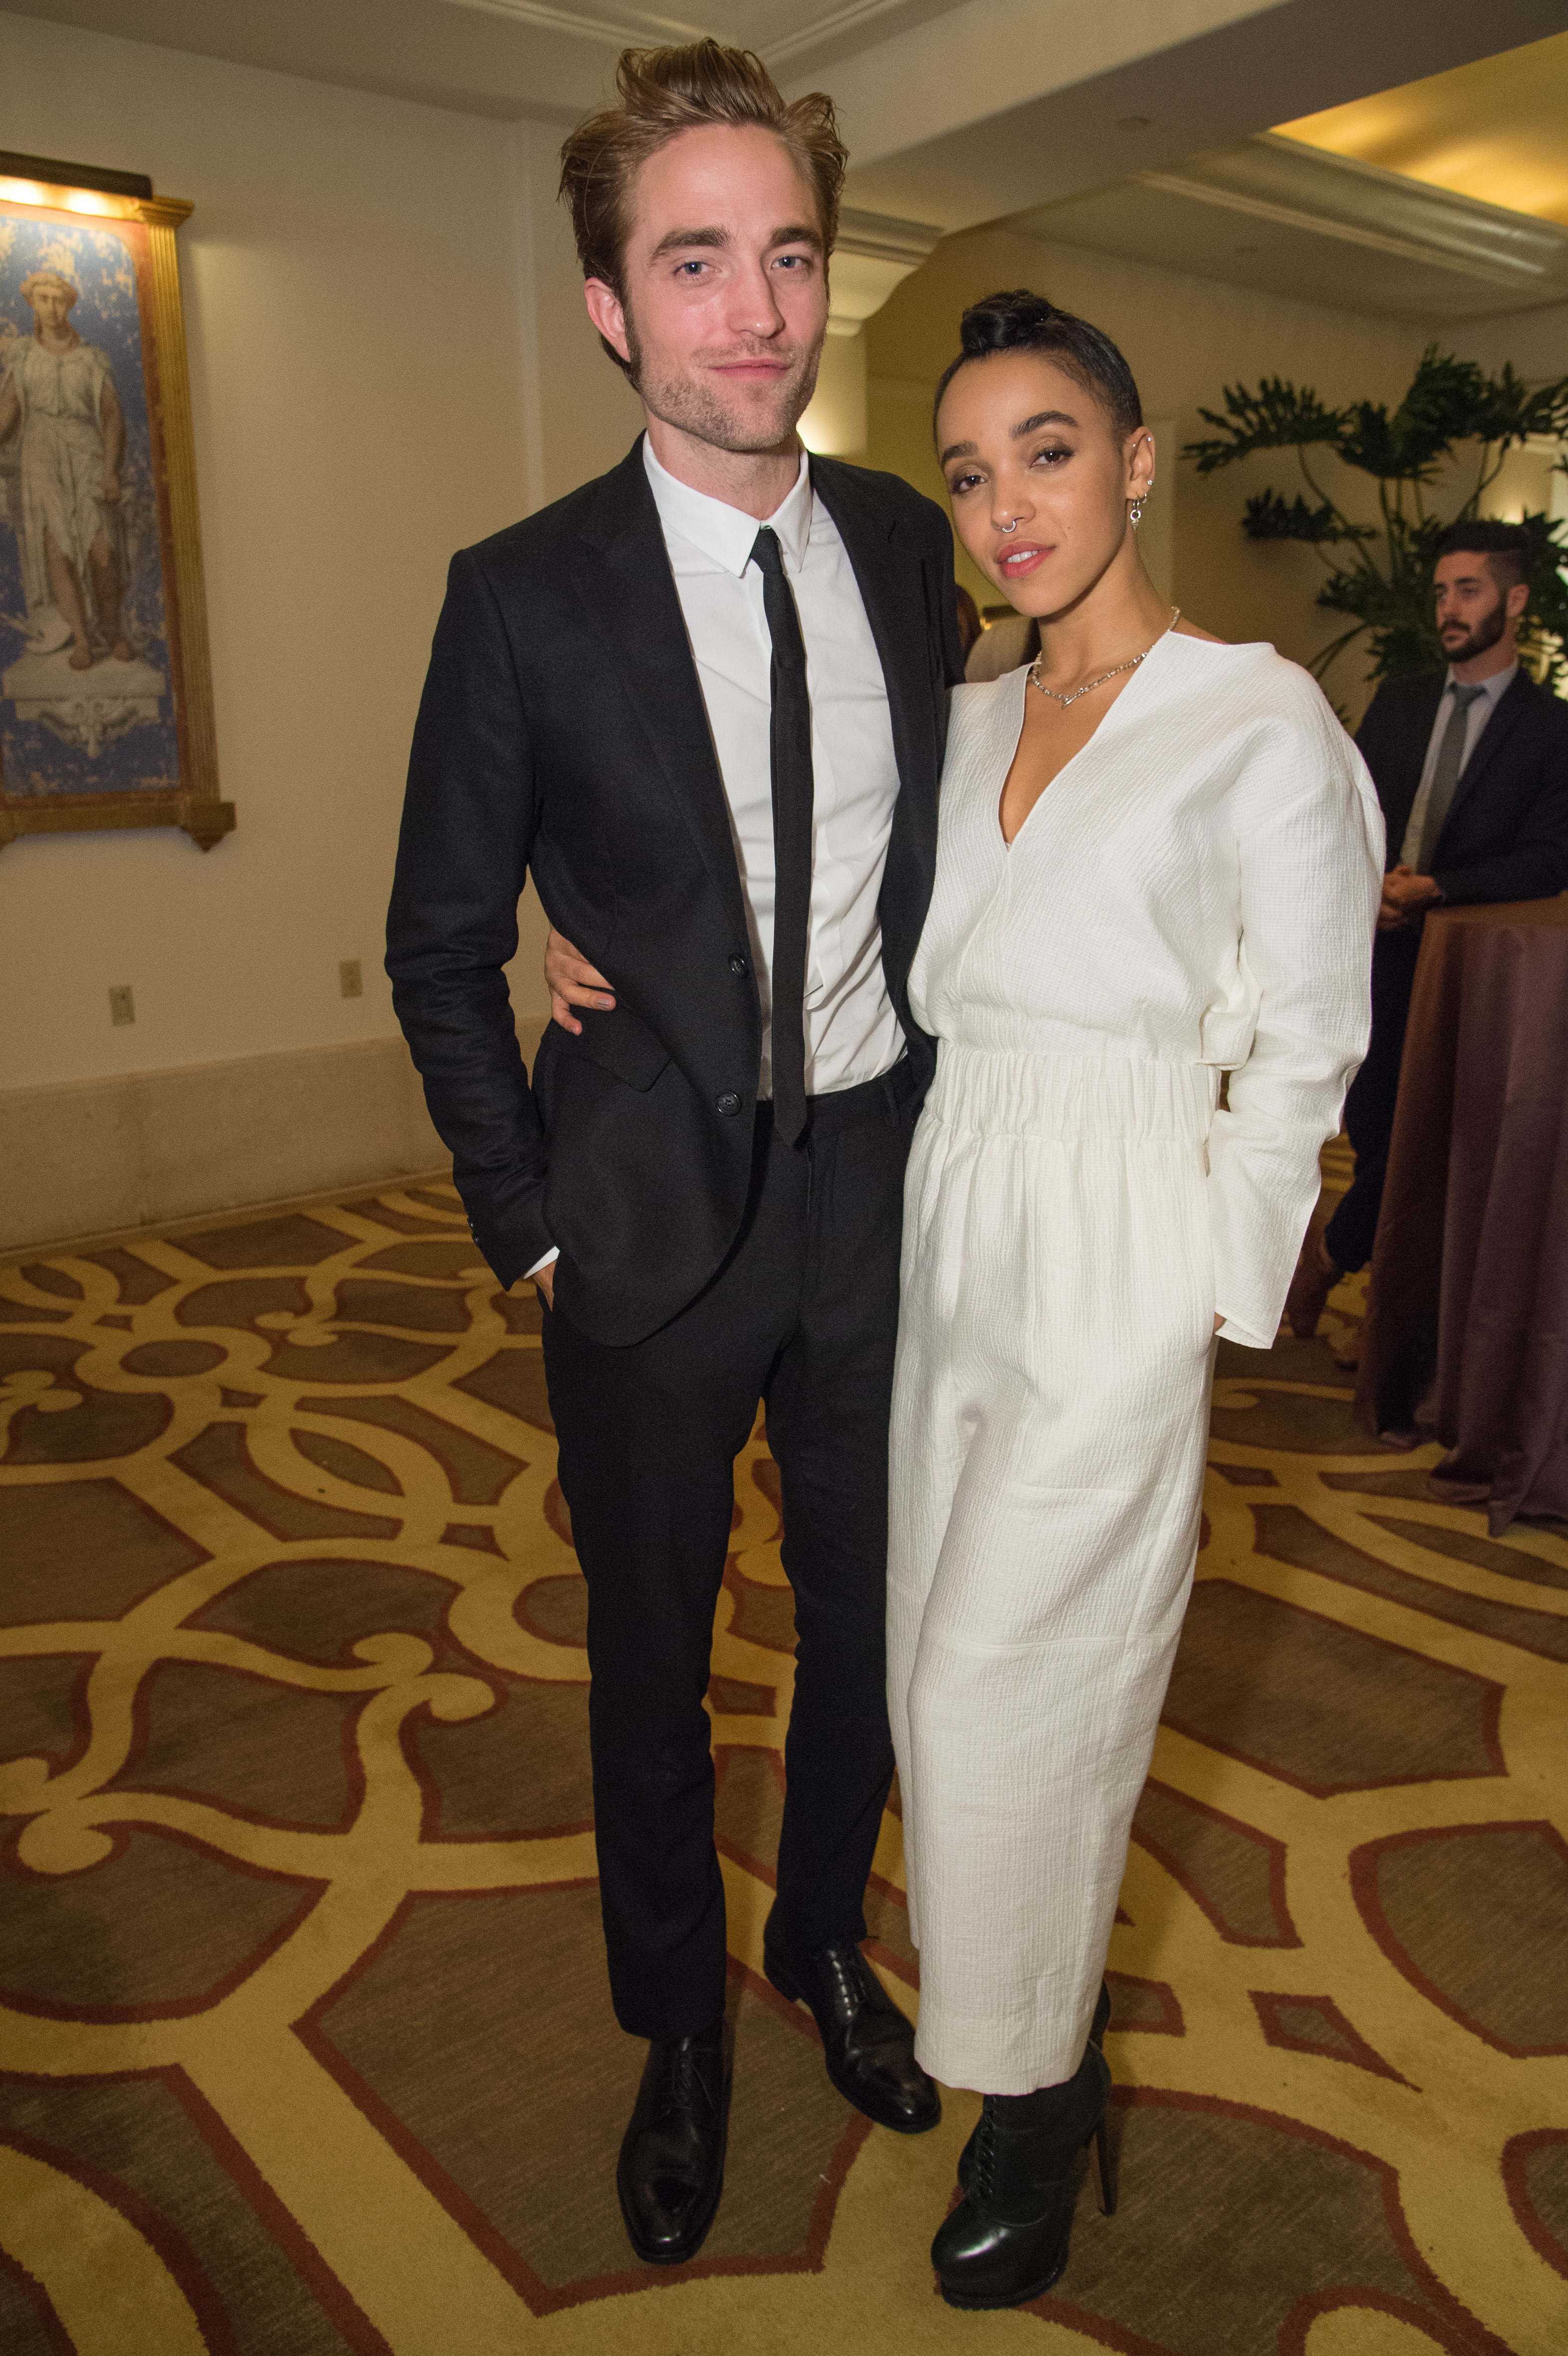 Robert Pattinson and FKA Twigs are not calling off their engagement